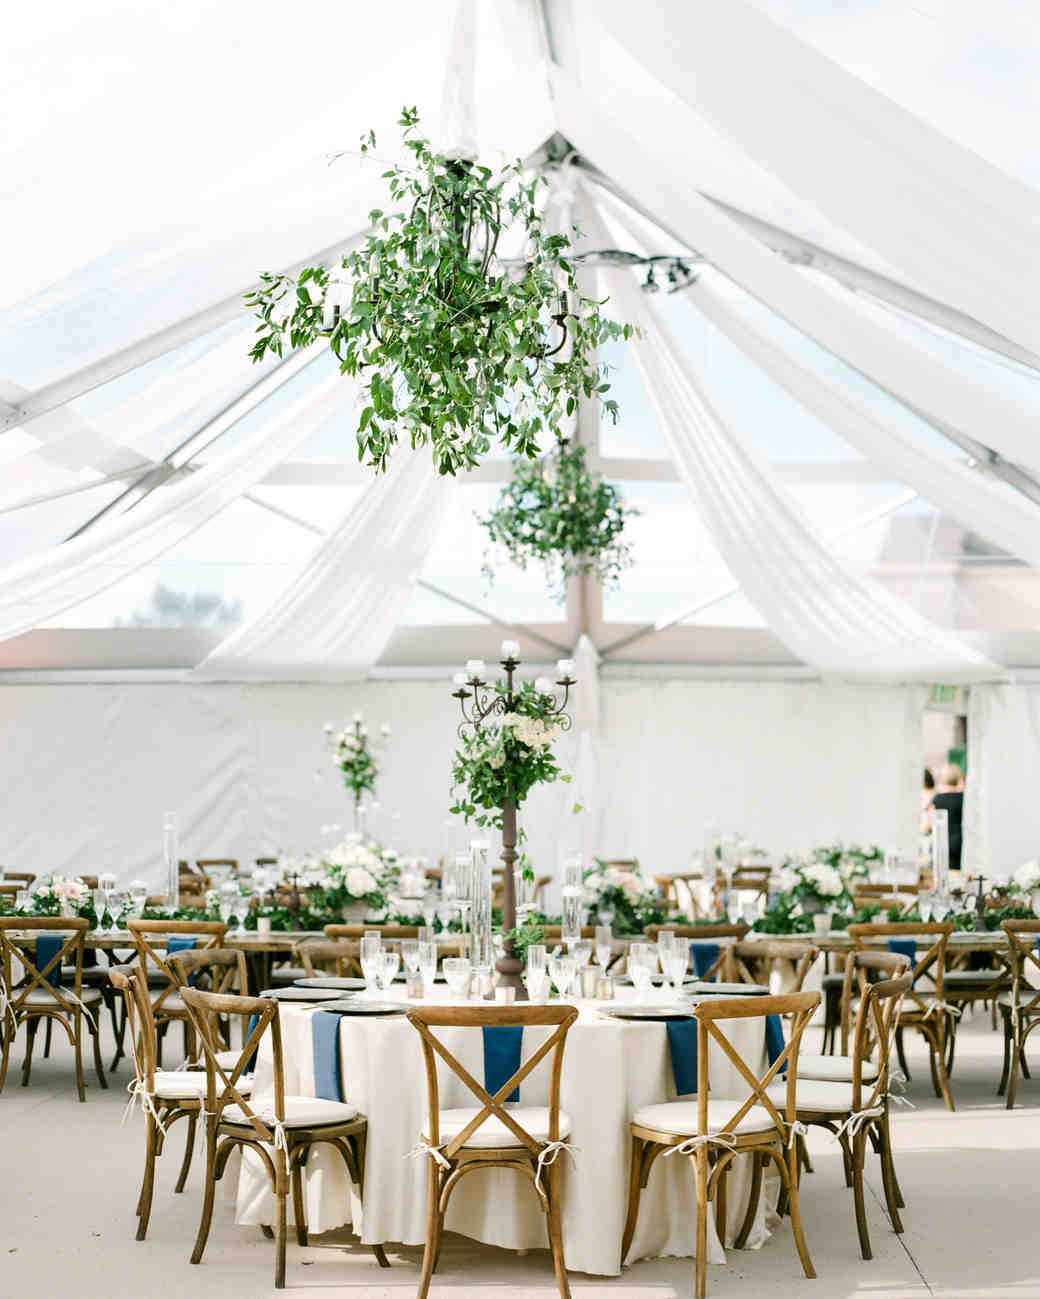 Talk to the tent rental company and let them know your decoration theme